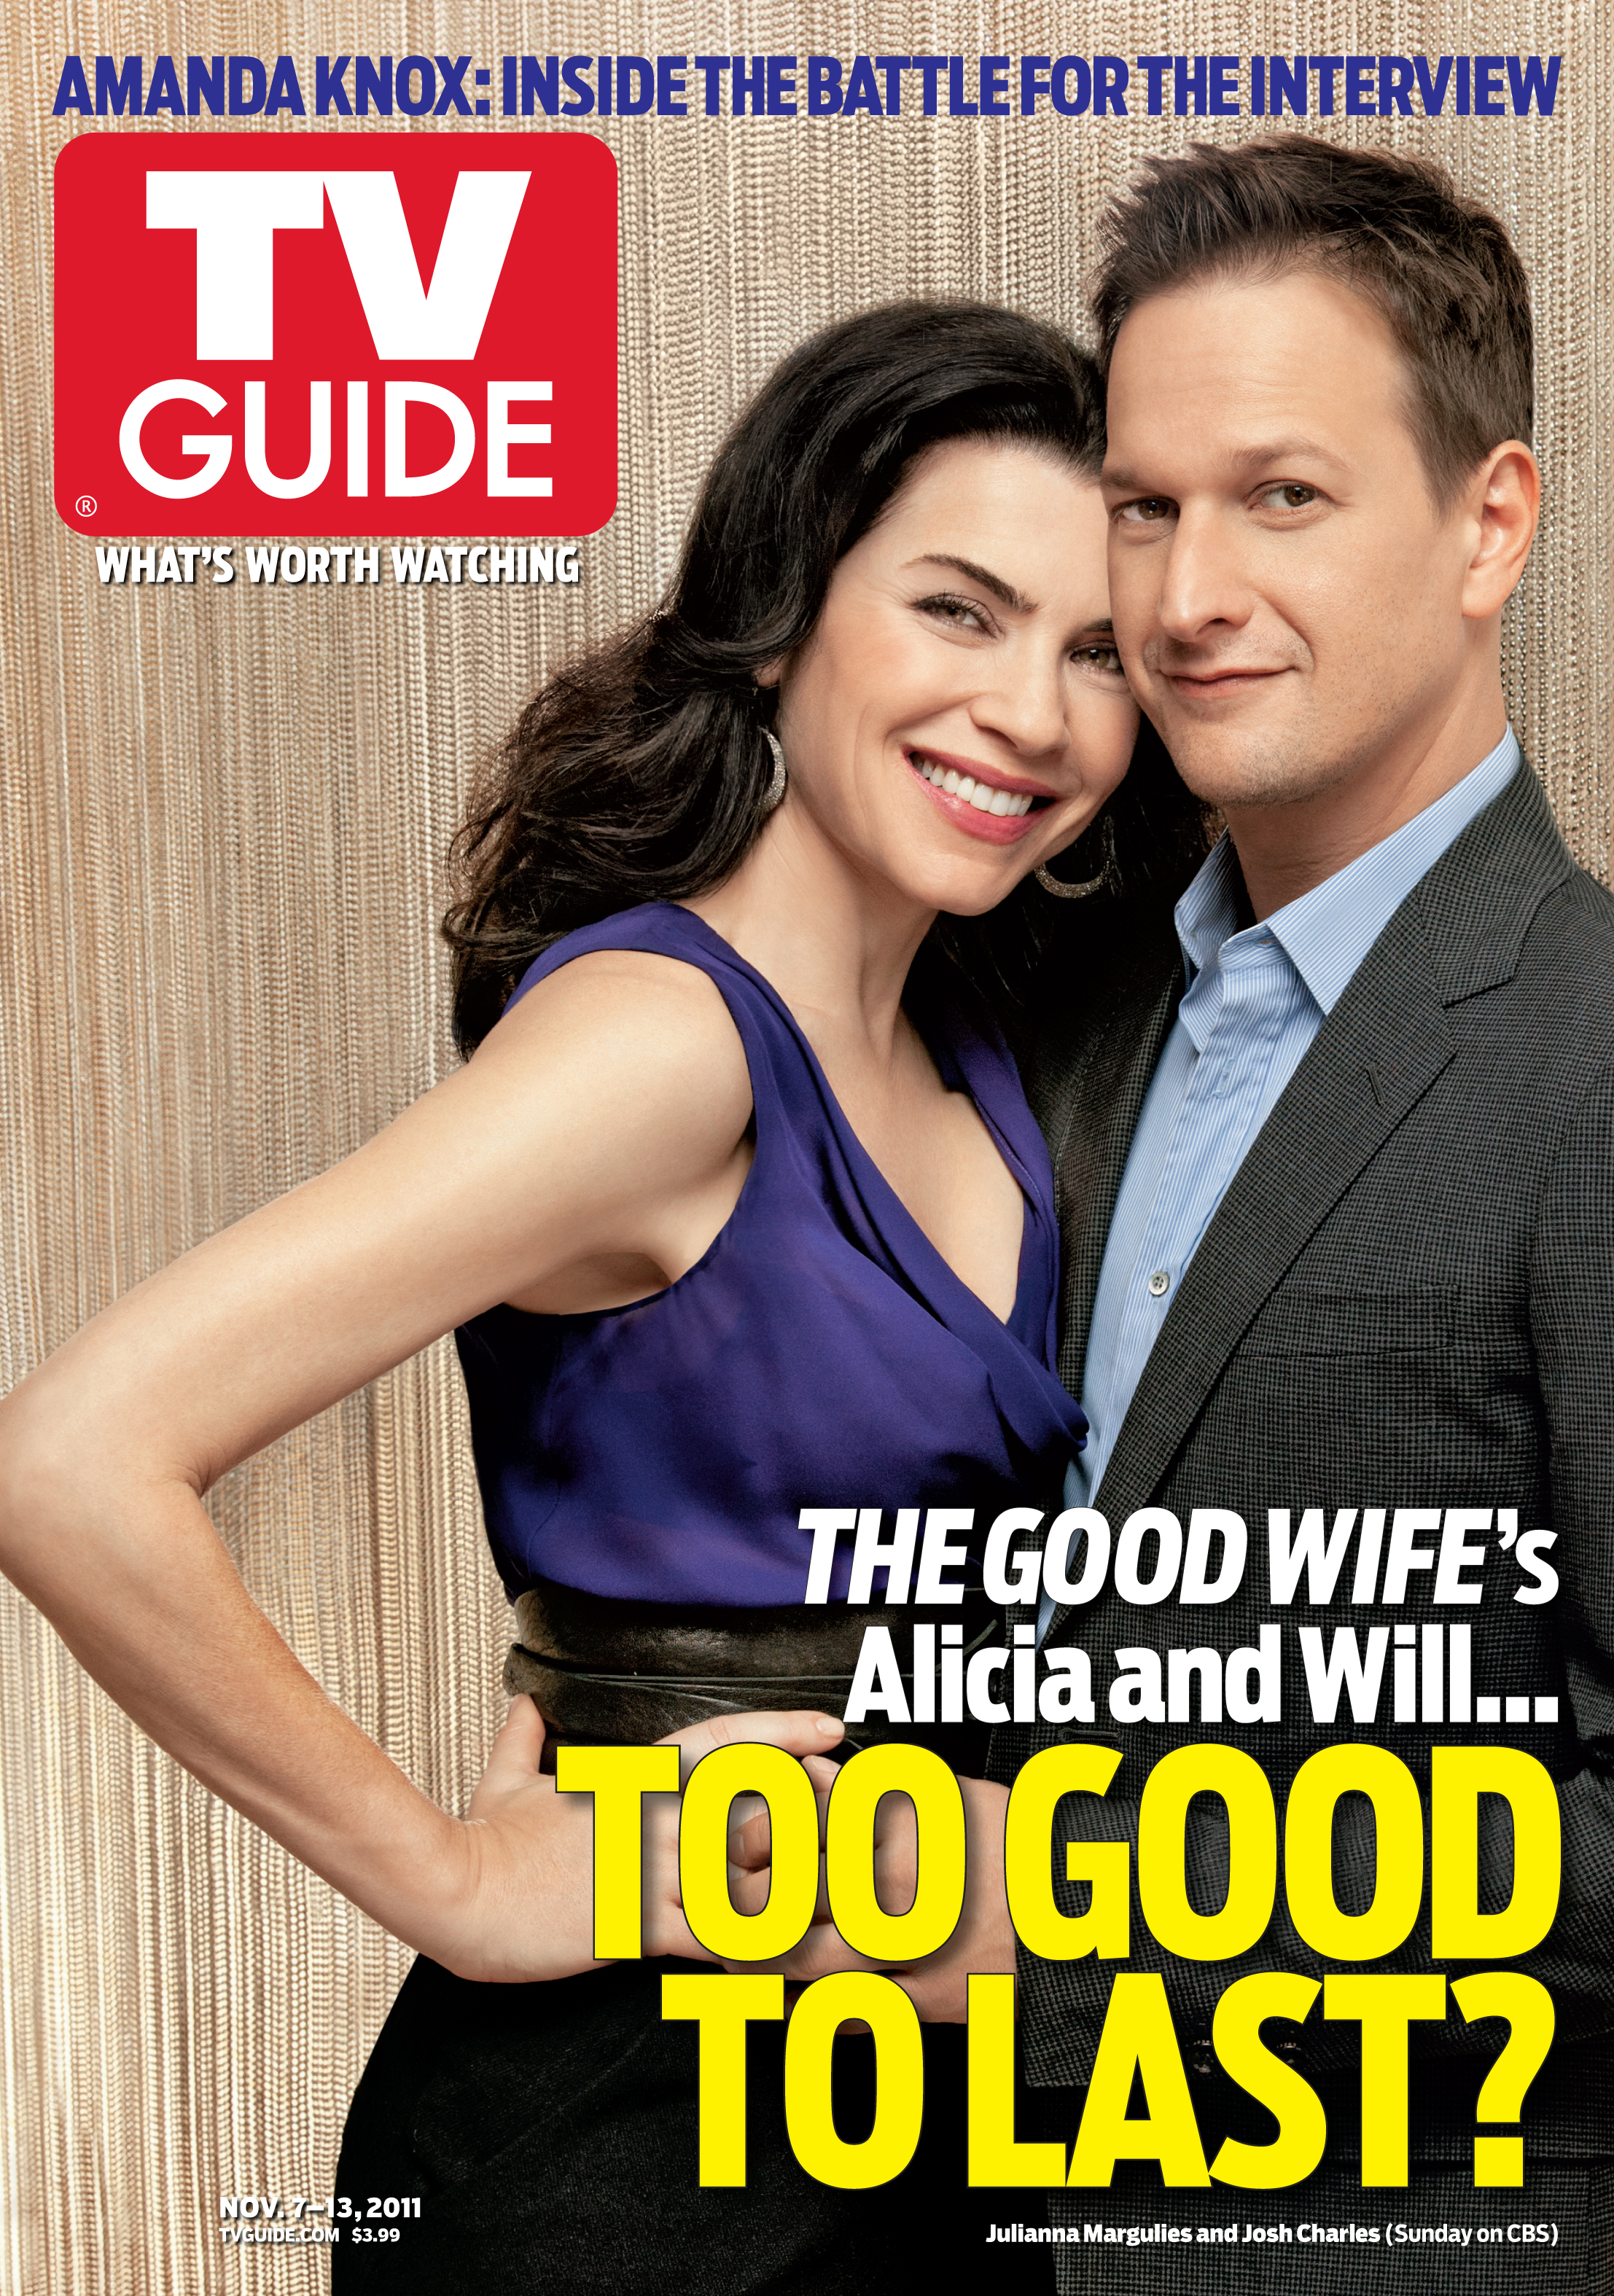 The Good Wife TV Guide Cover